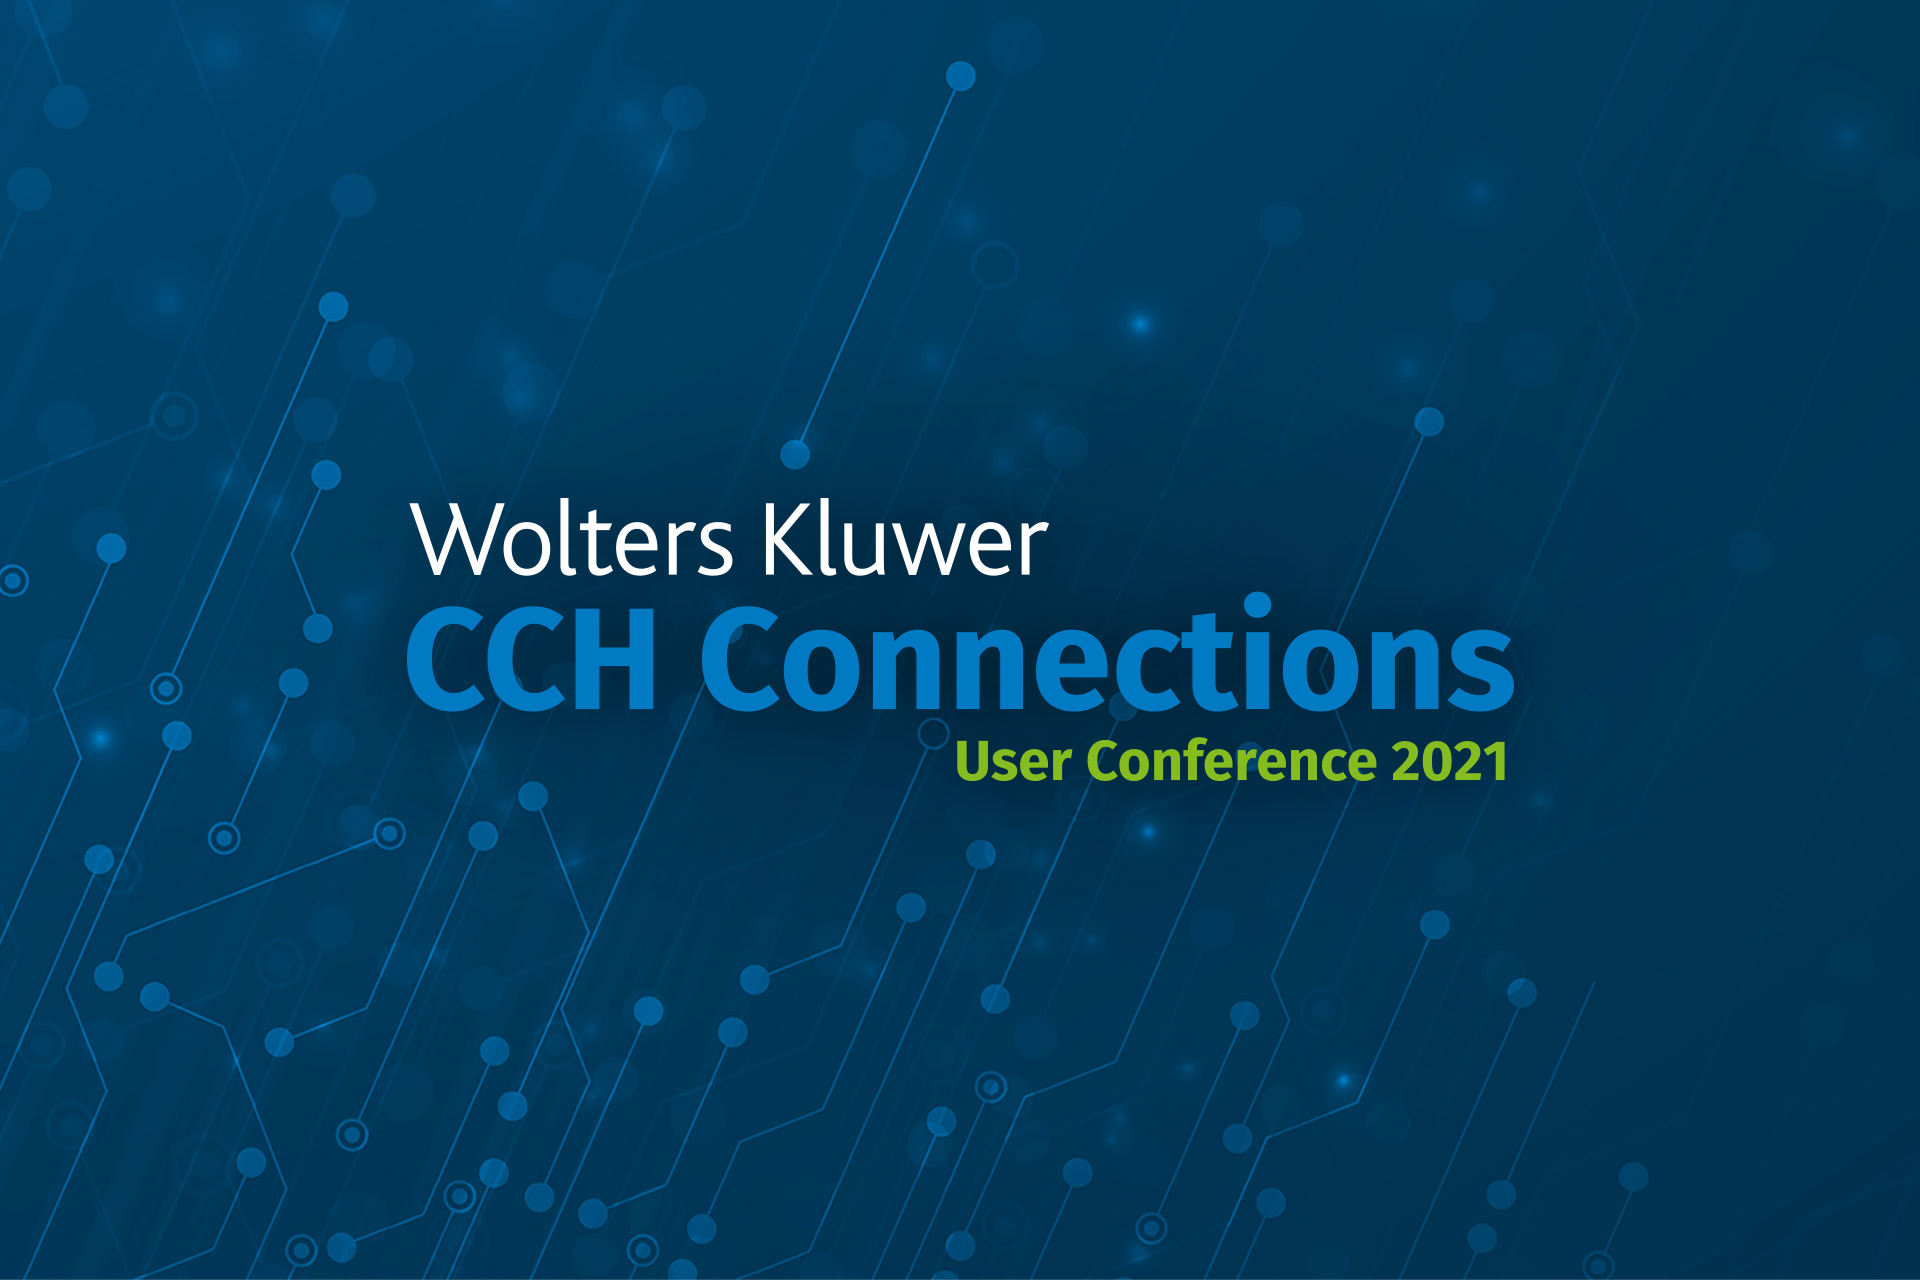 CCH Connections: User Conference 2021